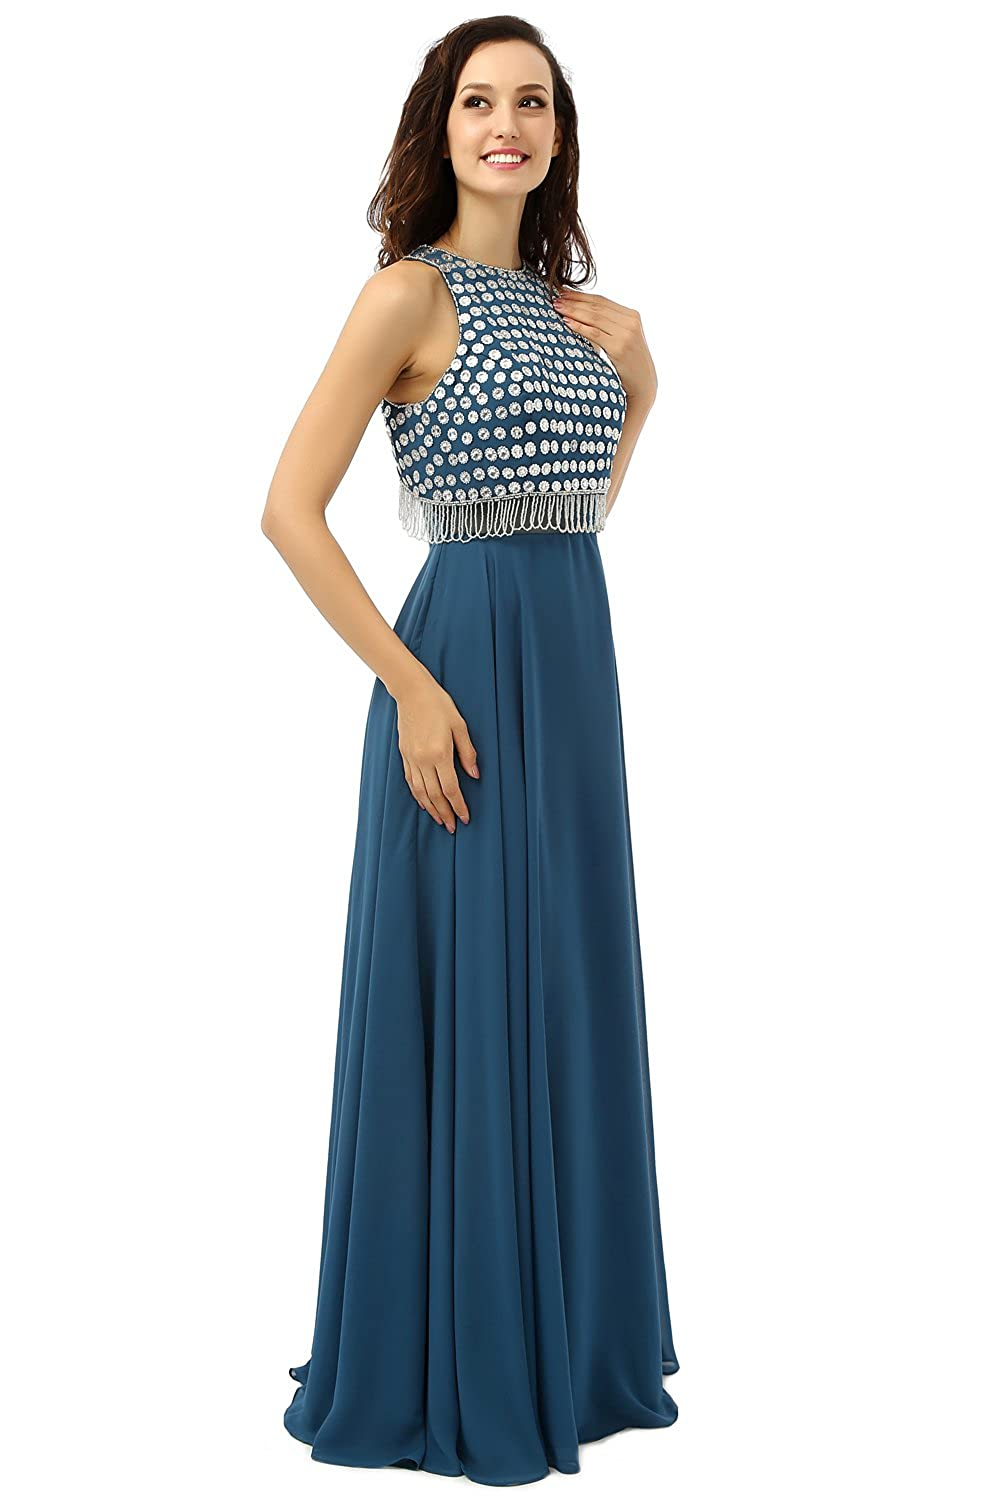 Amazon.com: Butalways Womens Cyan Long Prom Dress Cheap Evening Dress Elegant Party Dress: Clothing